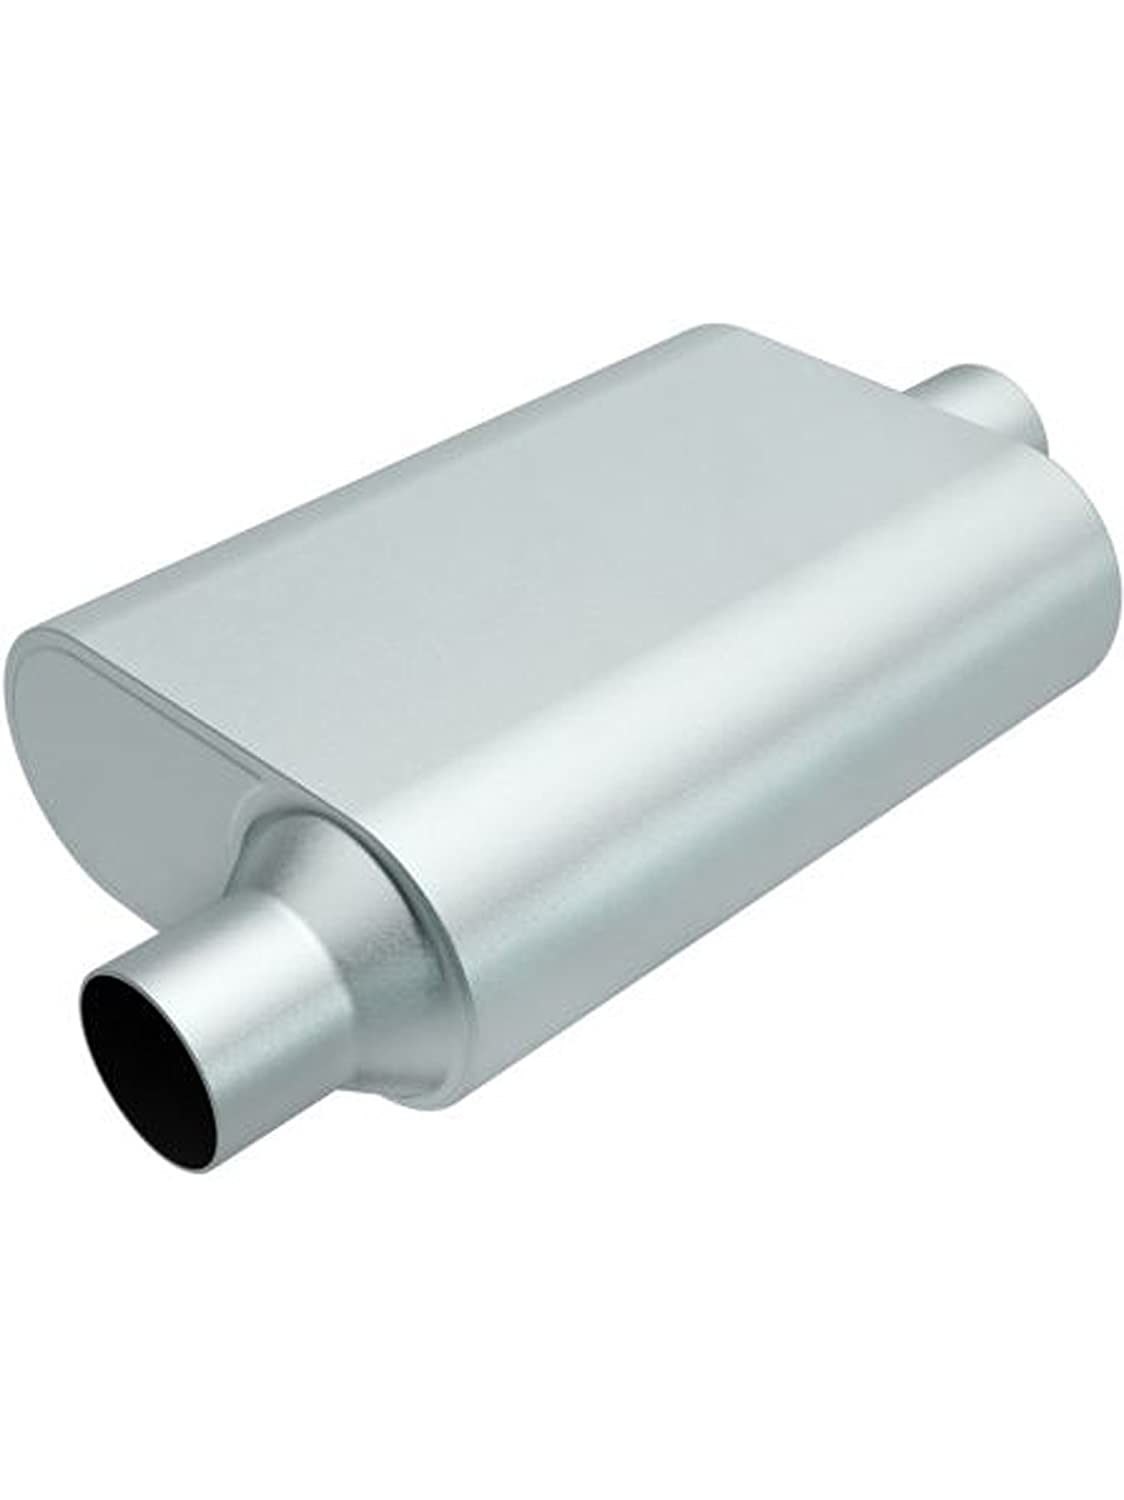 Magnaflow R22043 Rumble Exhaust Muffler